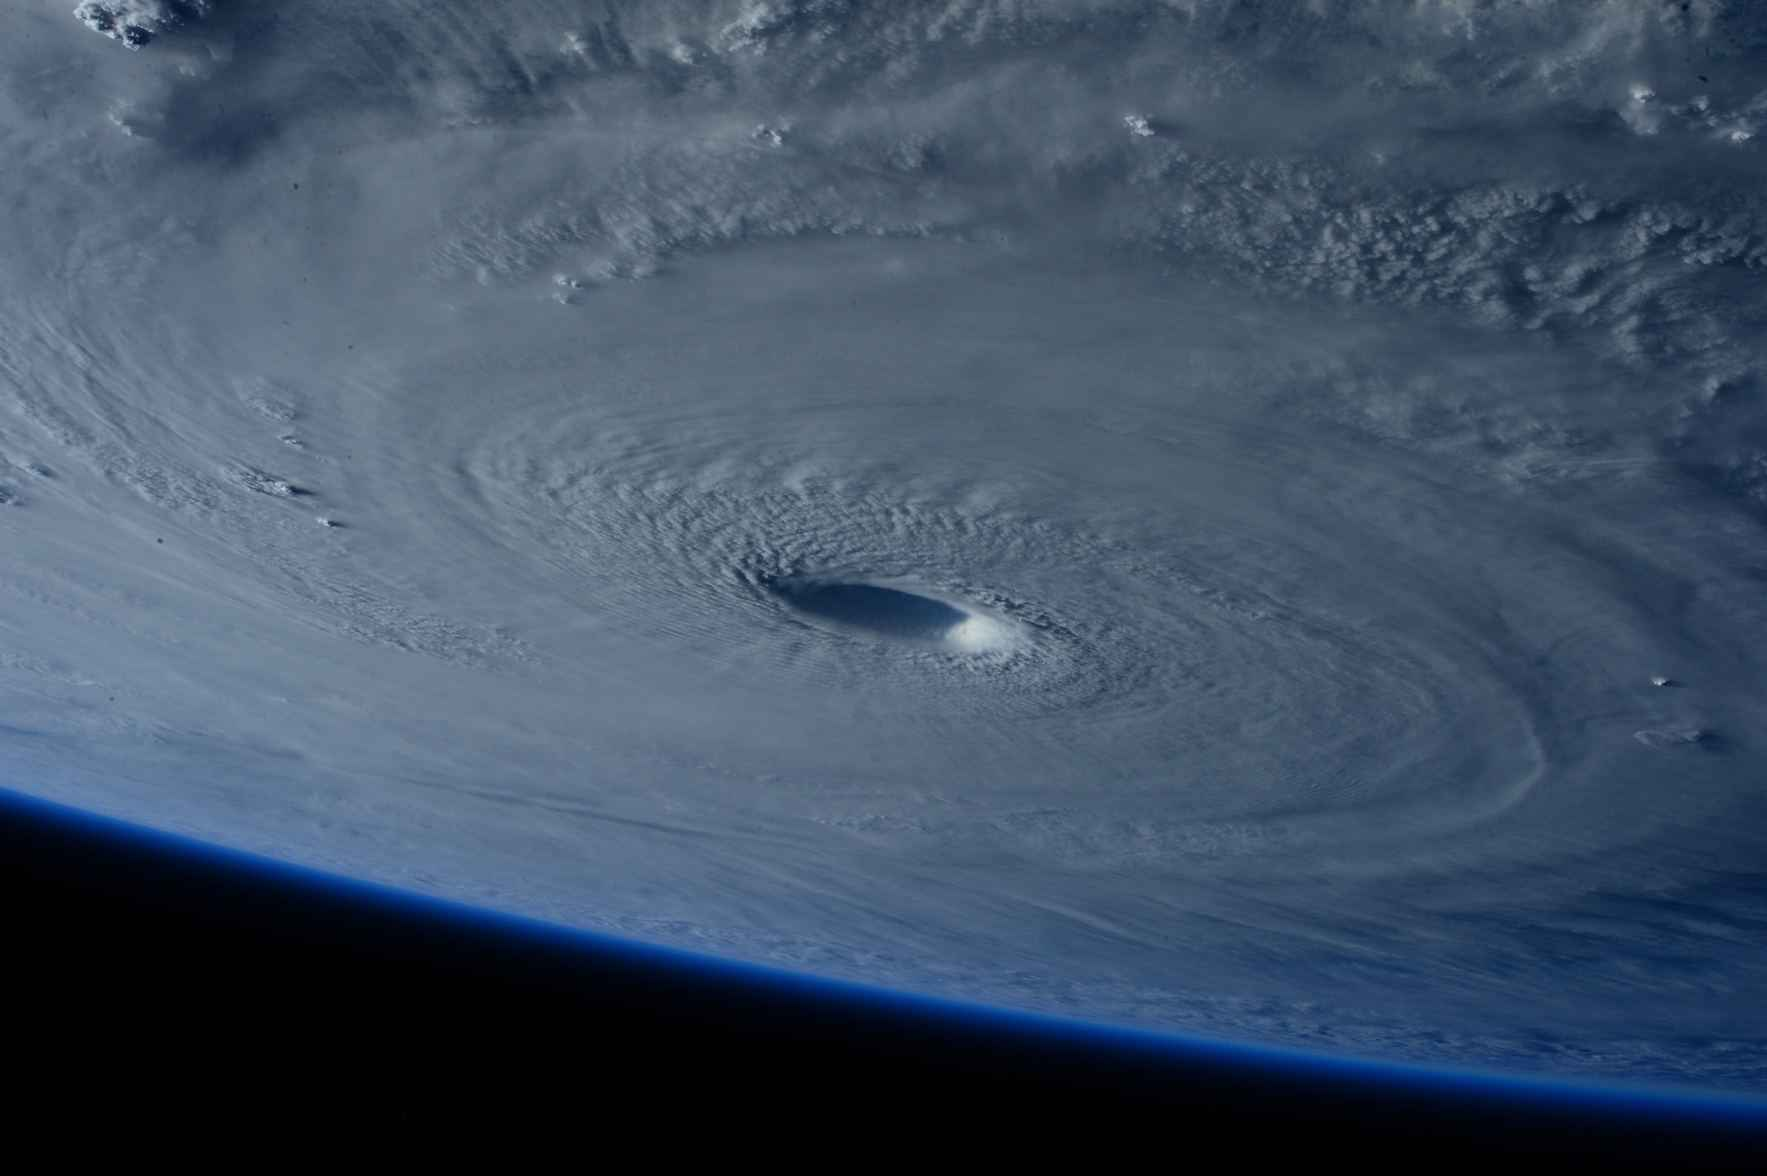 Individuals helping individuals impacted by Hurricane Dorian image